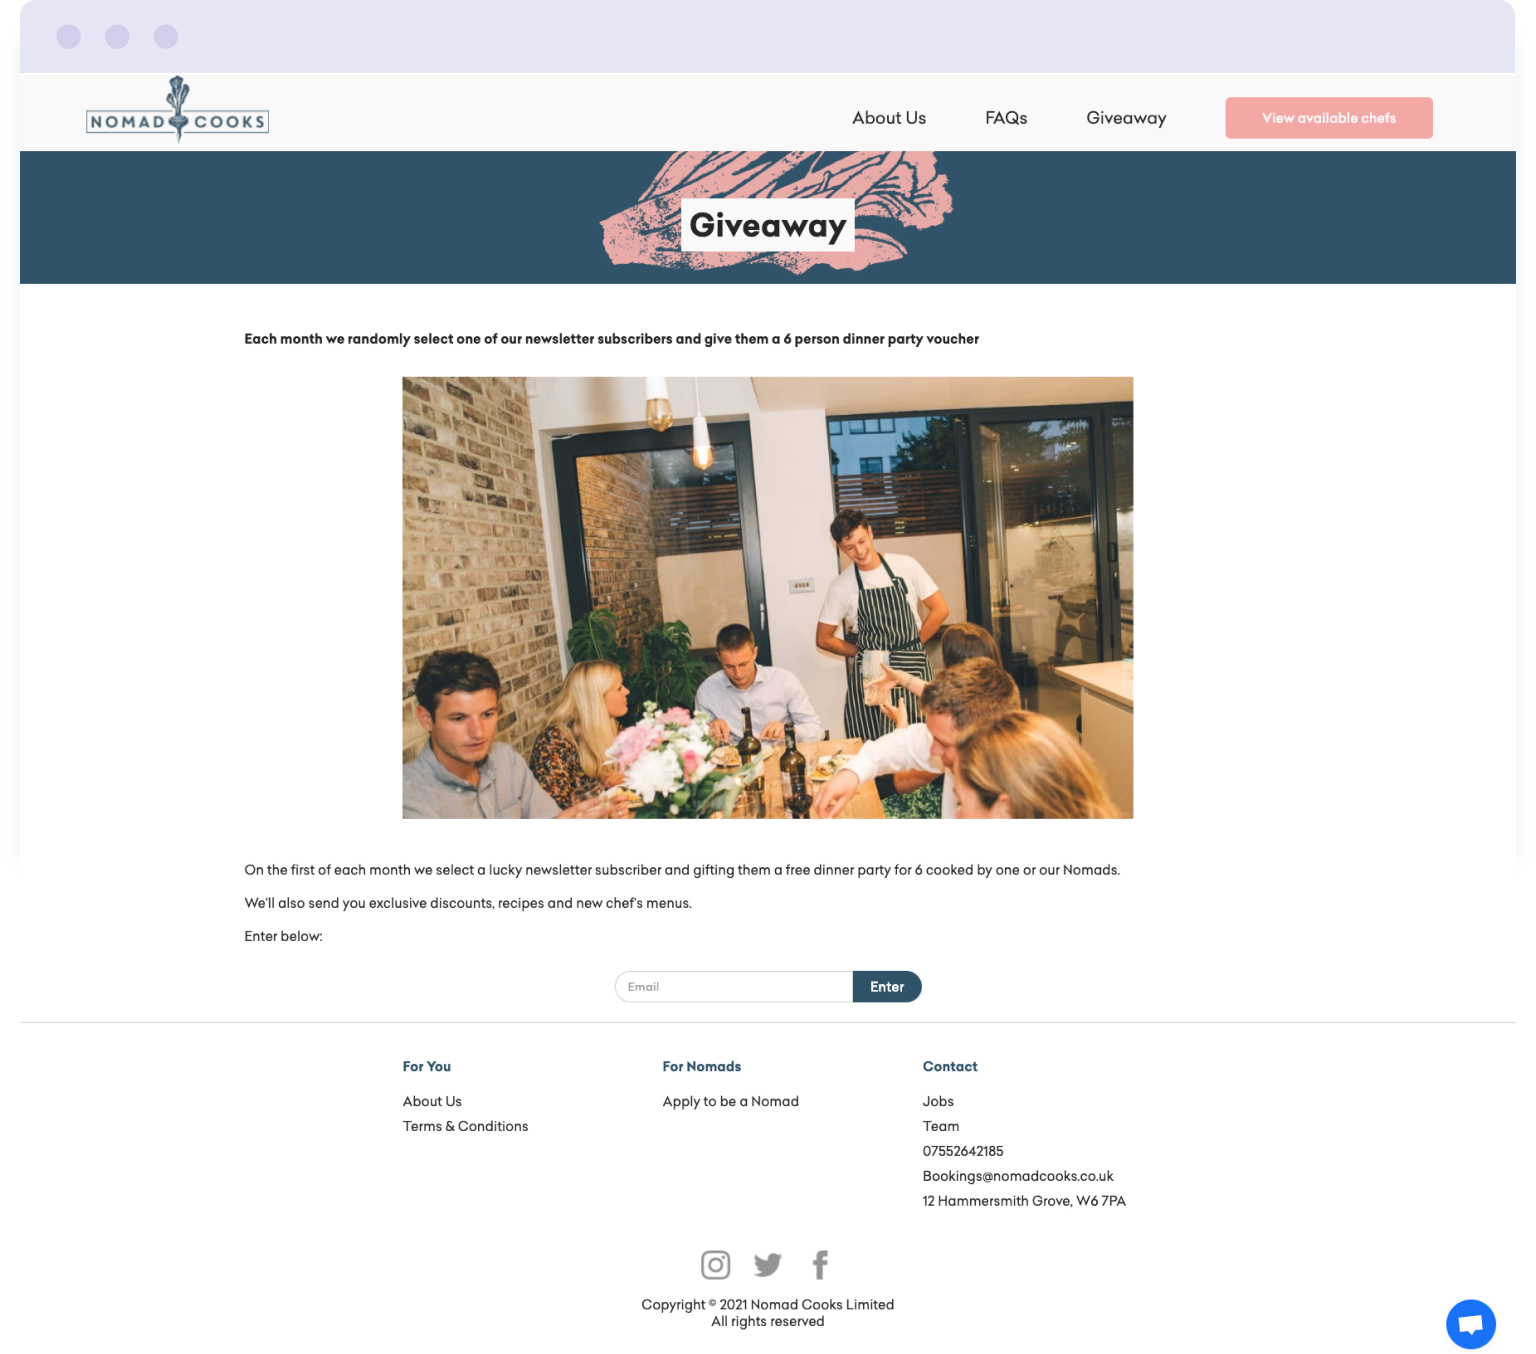 The giveaway opt-in landing page used by Nomad Cooks to encourage sign-ups to their mailing list